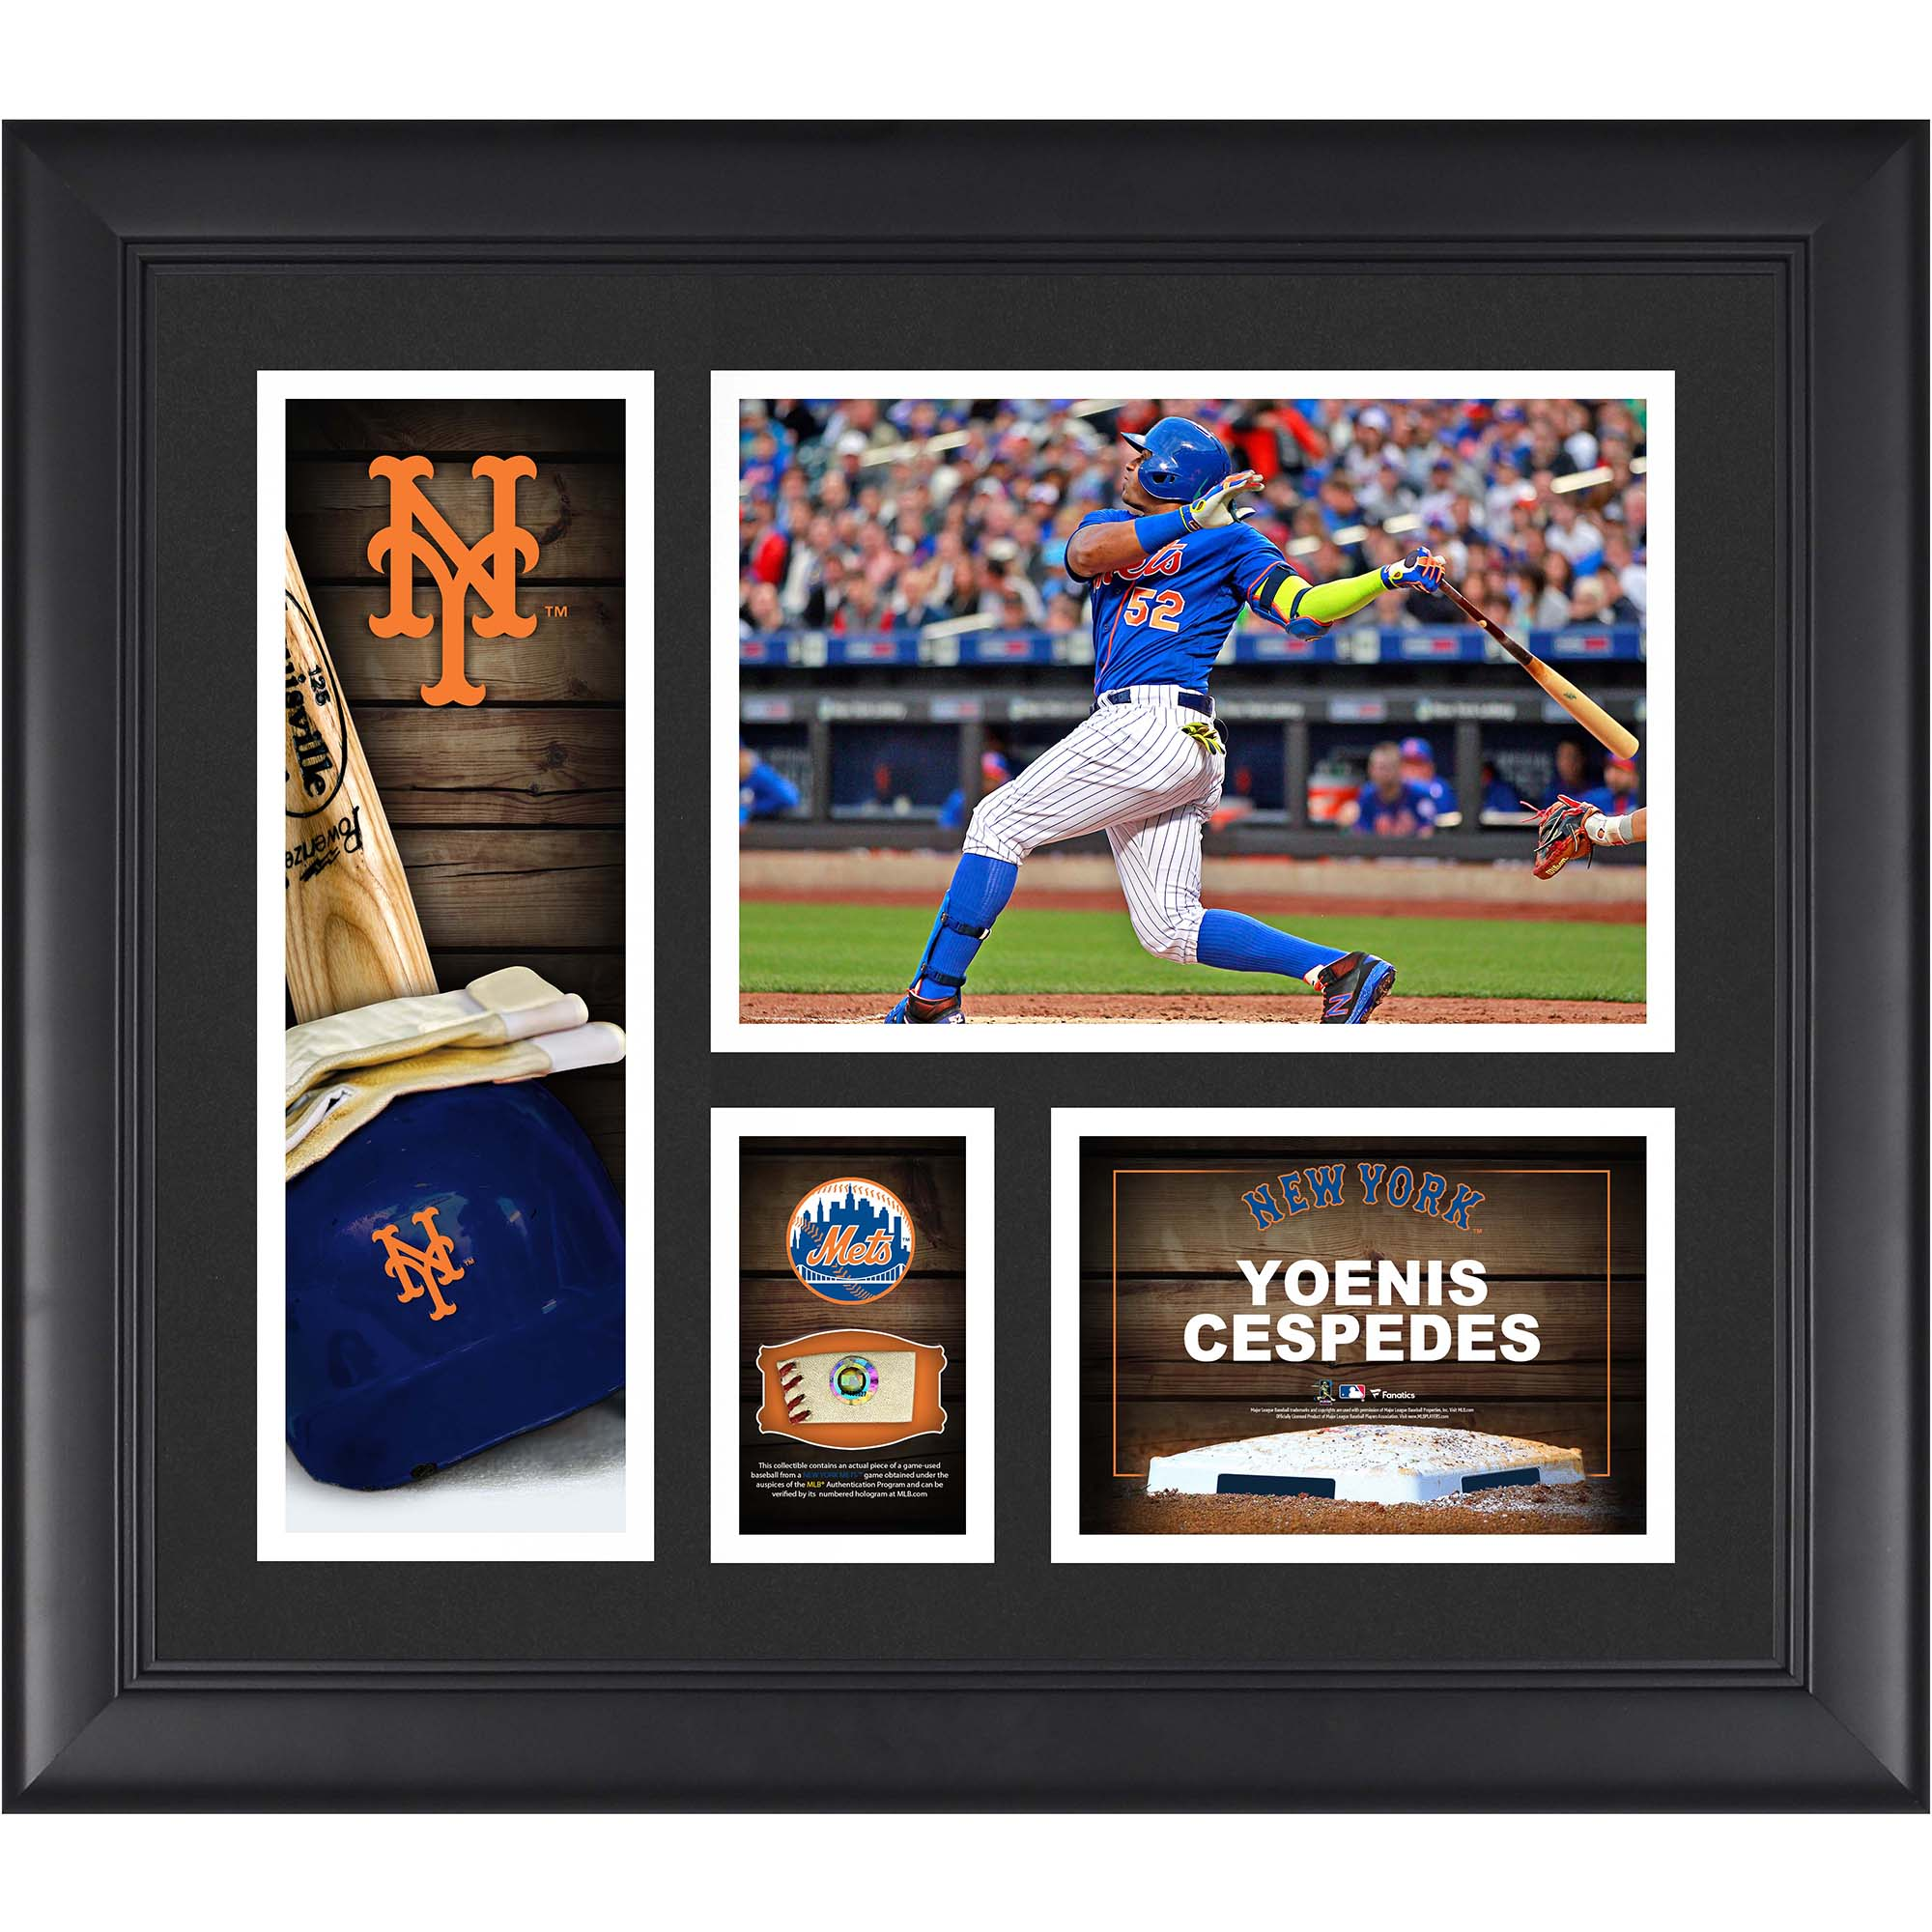 """Yoenis Cespedes New York Mets Fanatics Authentic Framed 15"""" x 17"""" Player Collage with a Piece of Game-Used Ball - No Size"""